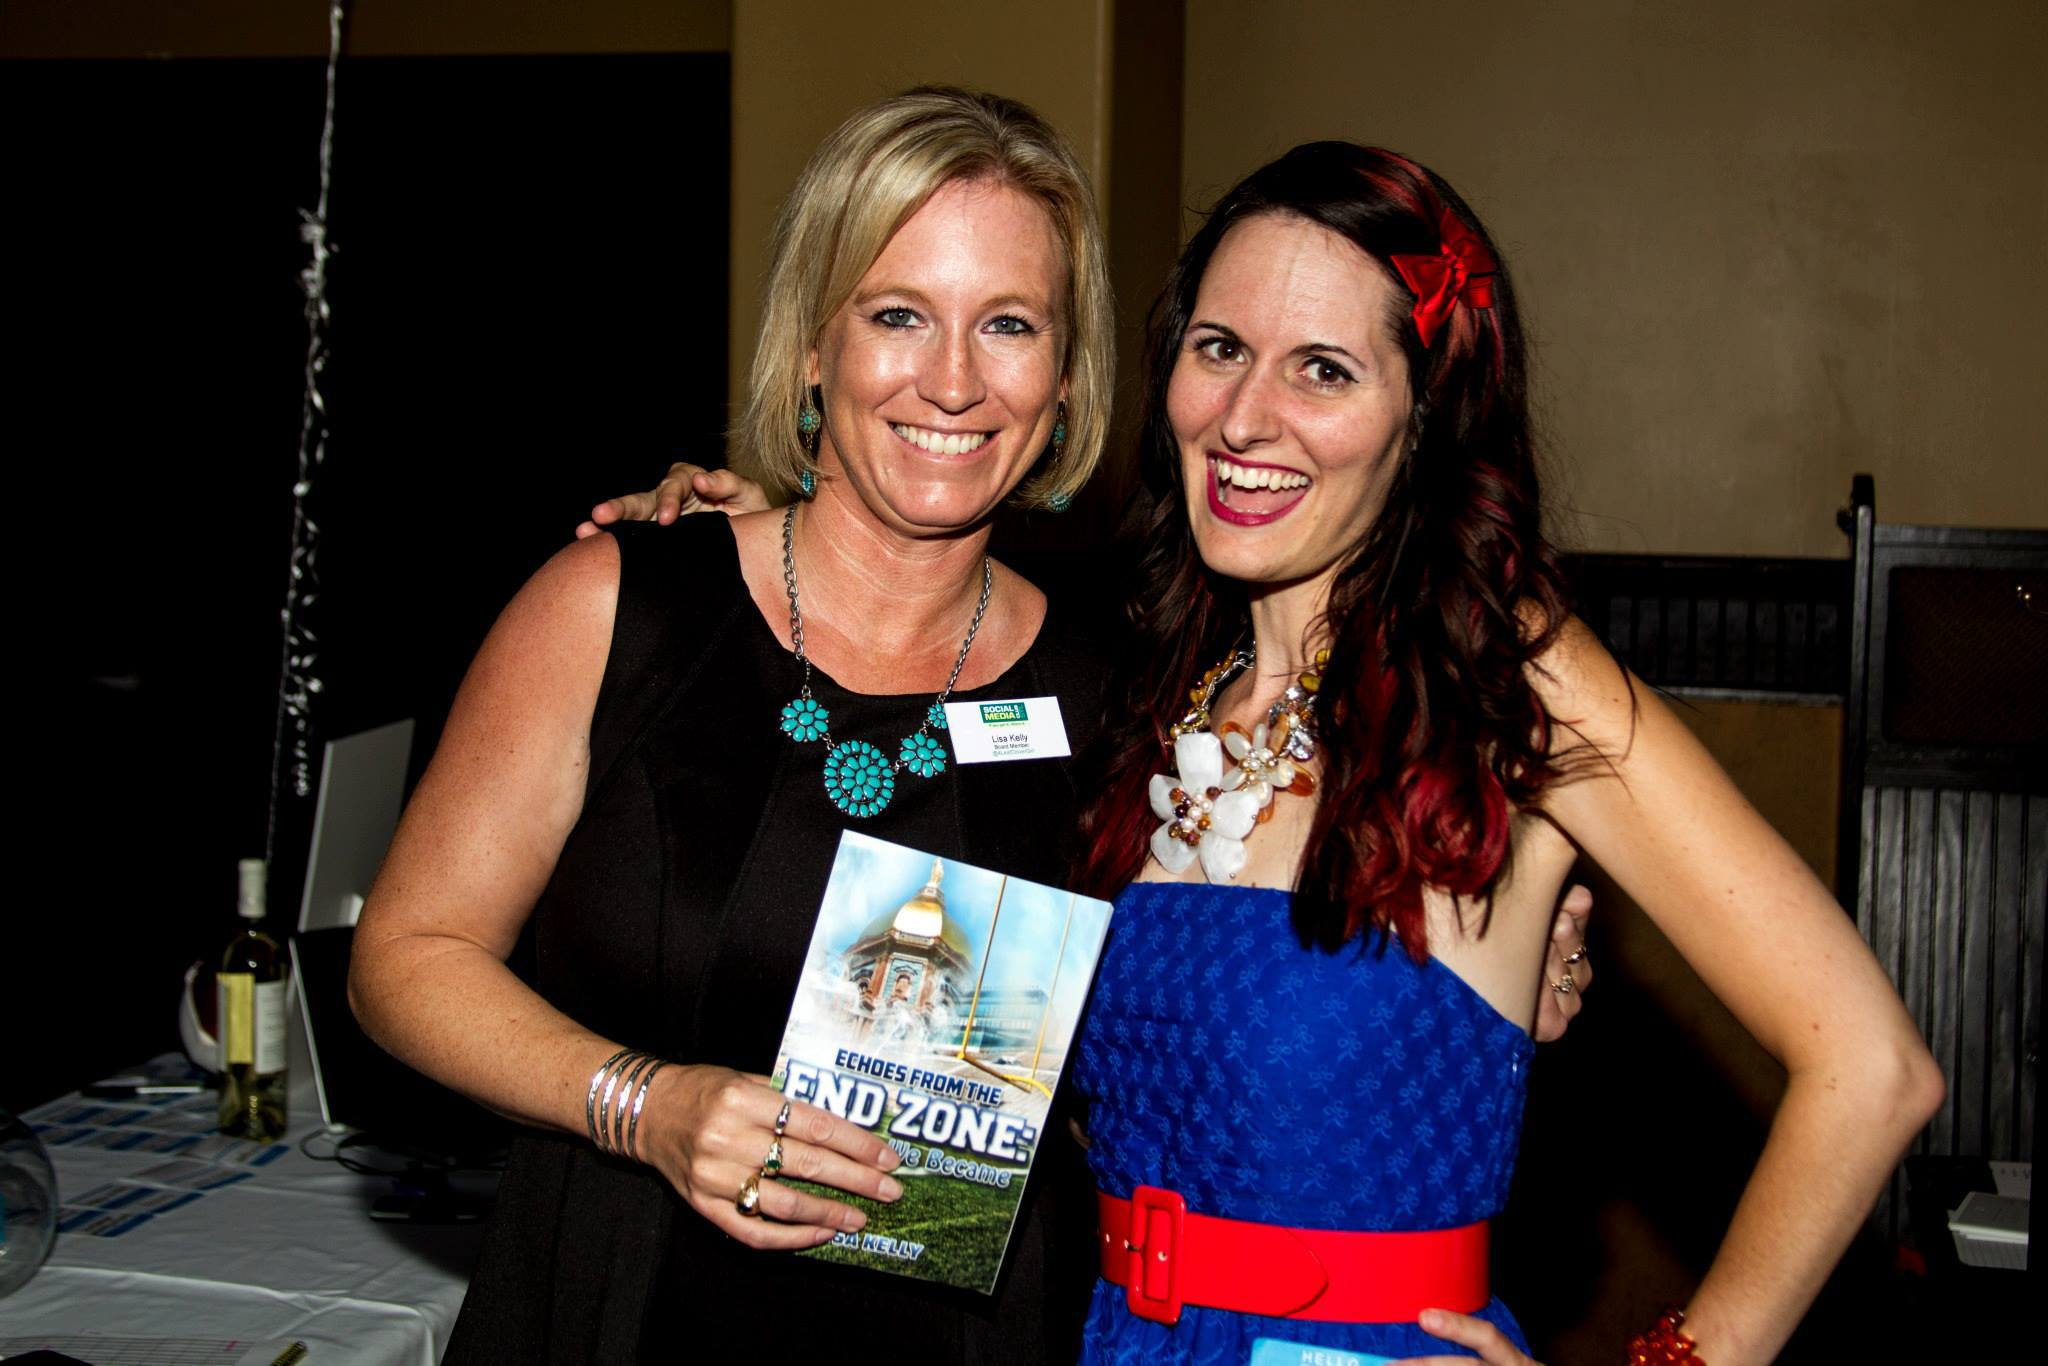 From Blogging to Published Author